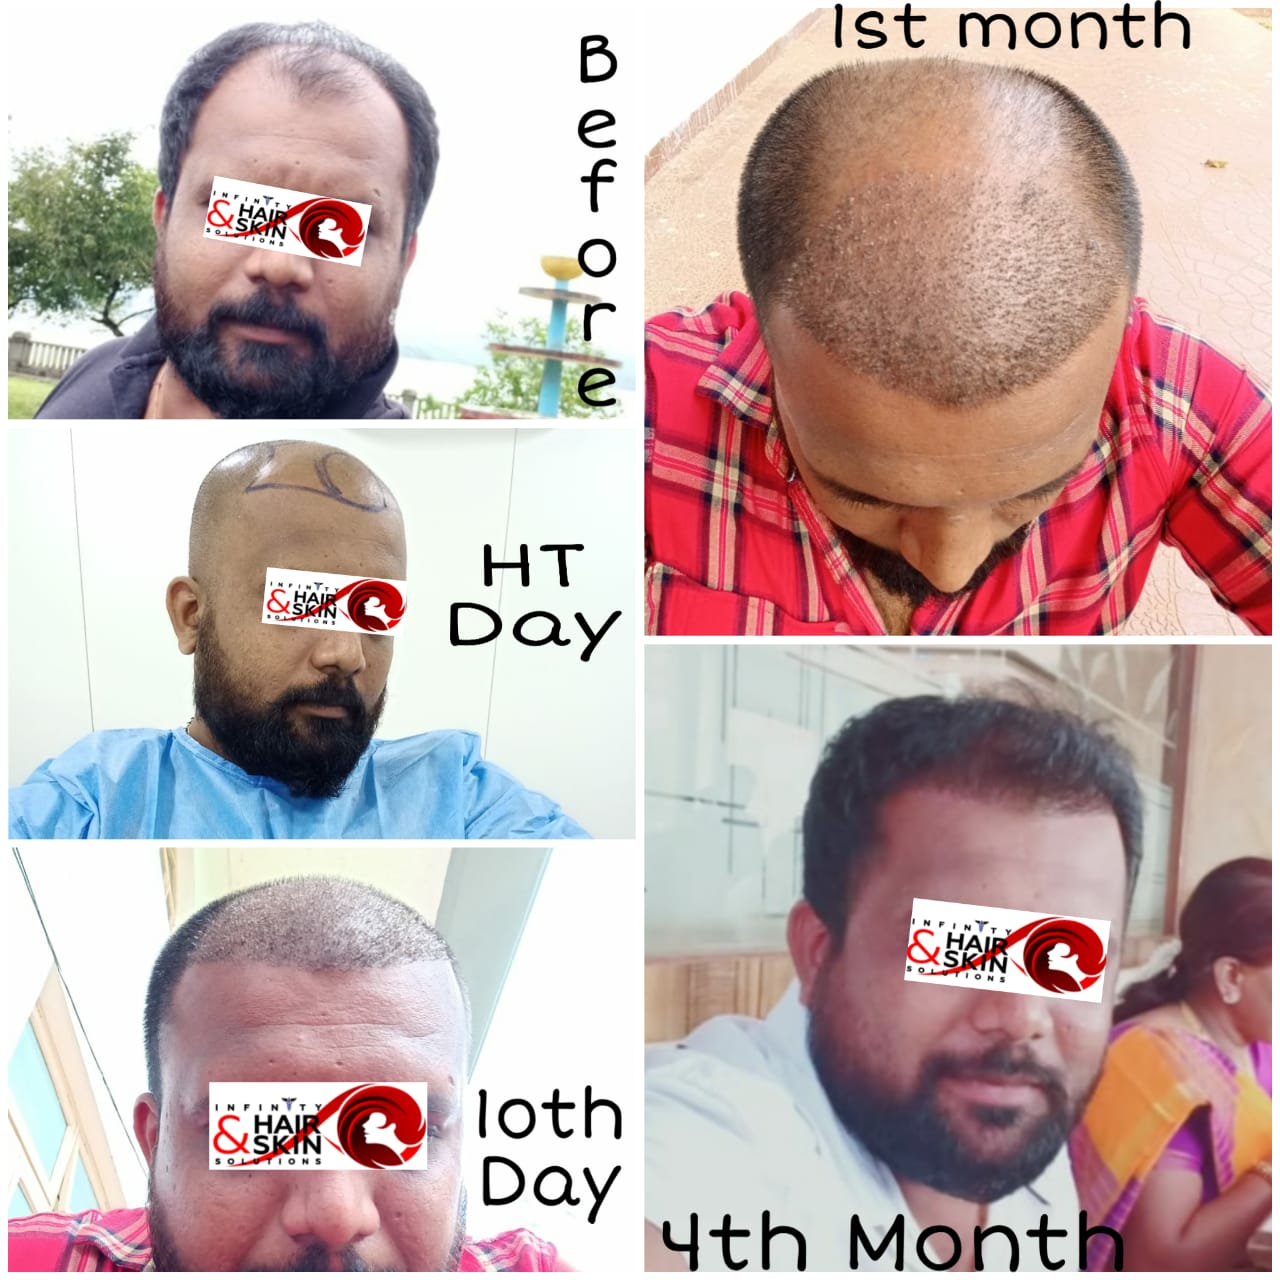 OUR HAIR GROWTH TREATMENT RESULTS